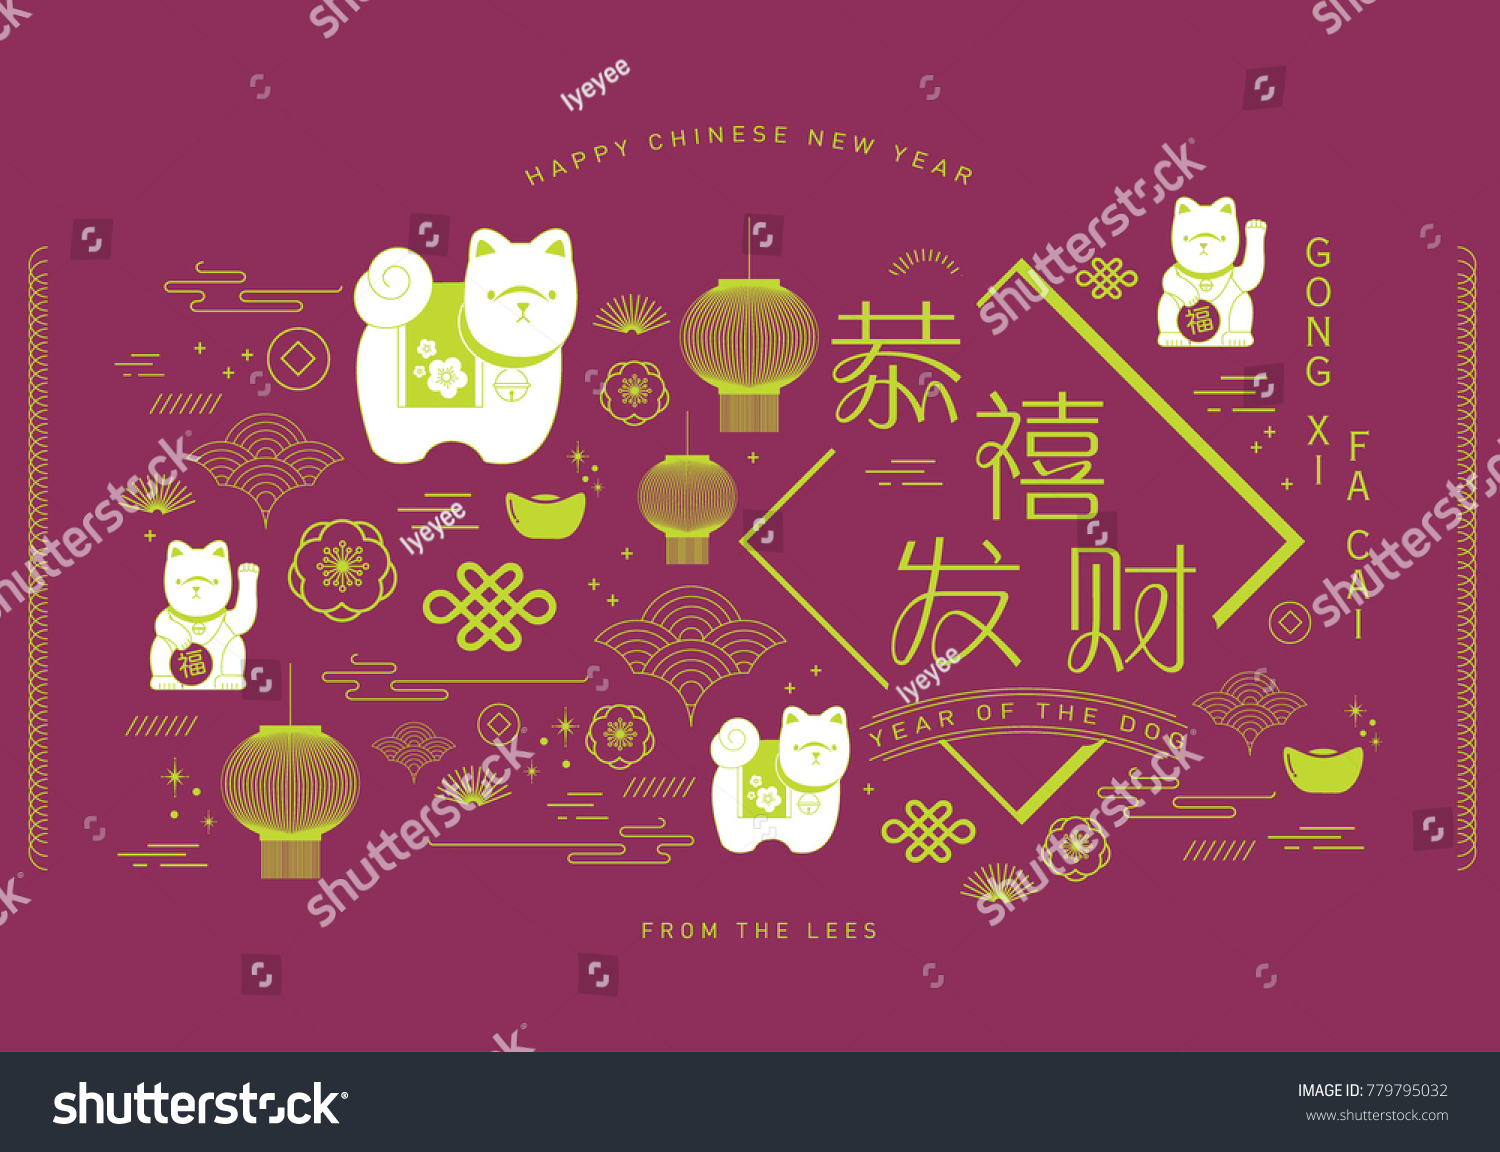 Chinese new year dog greetings chinese stock vector 779795032 chinese new year of the dog greetings with chinese characters that mean wishing you prosperity m4hsunfo